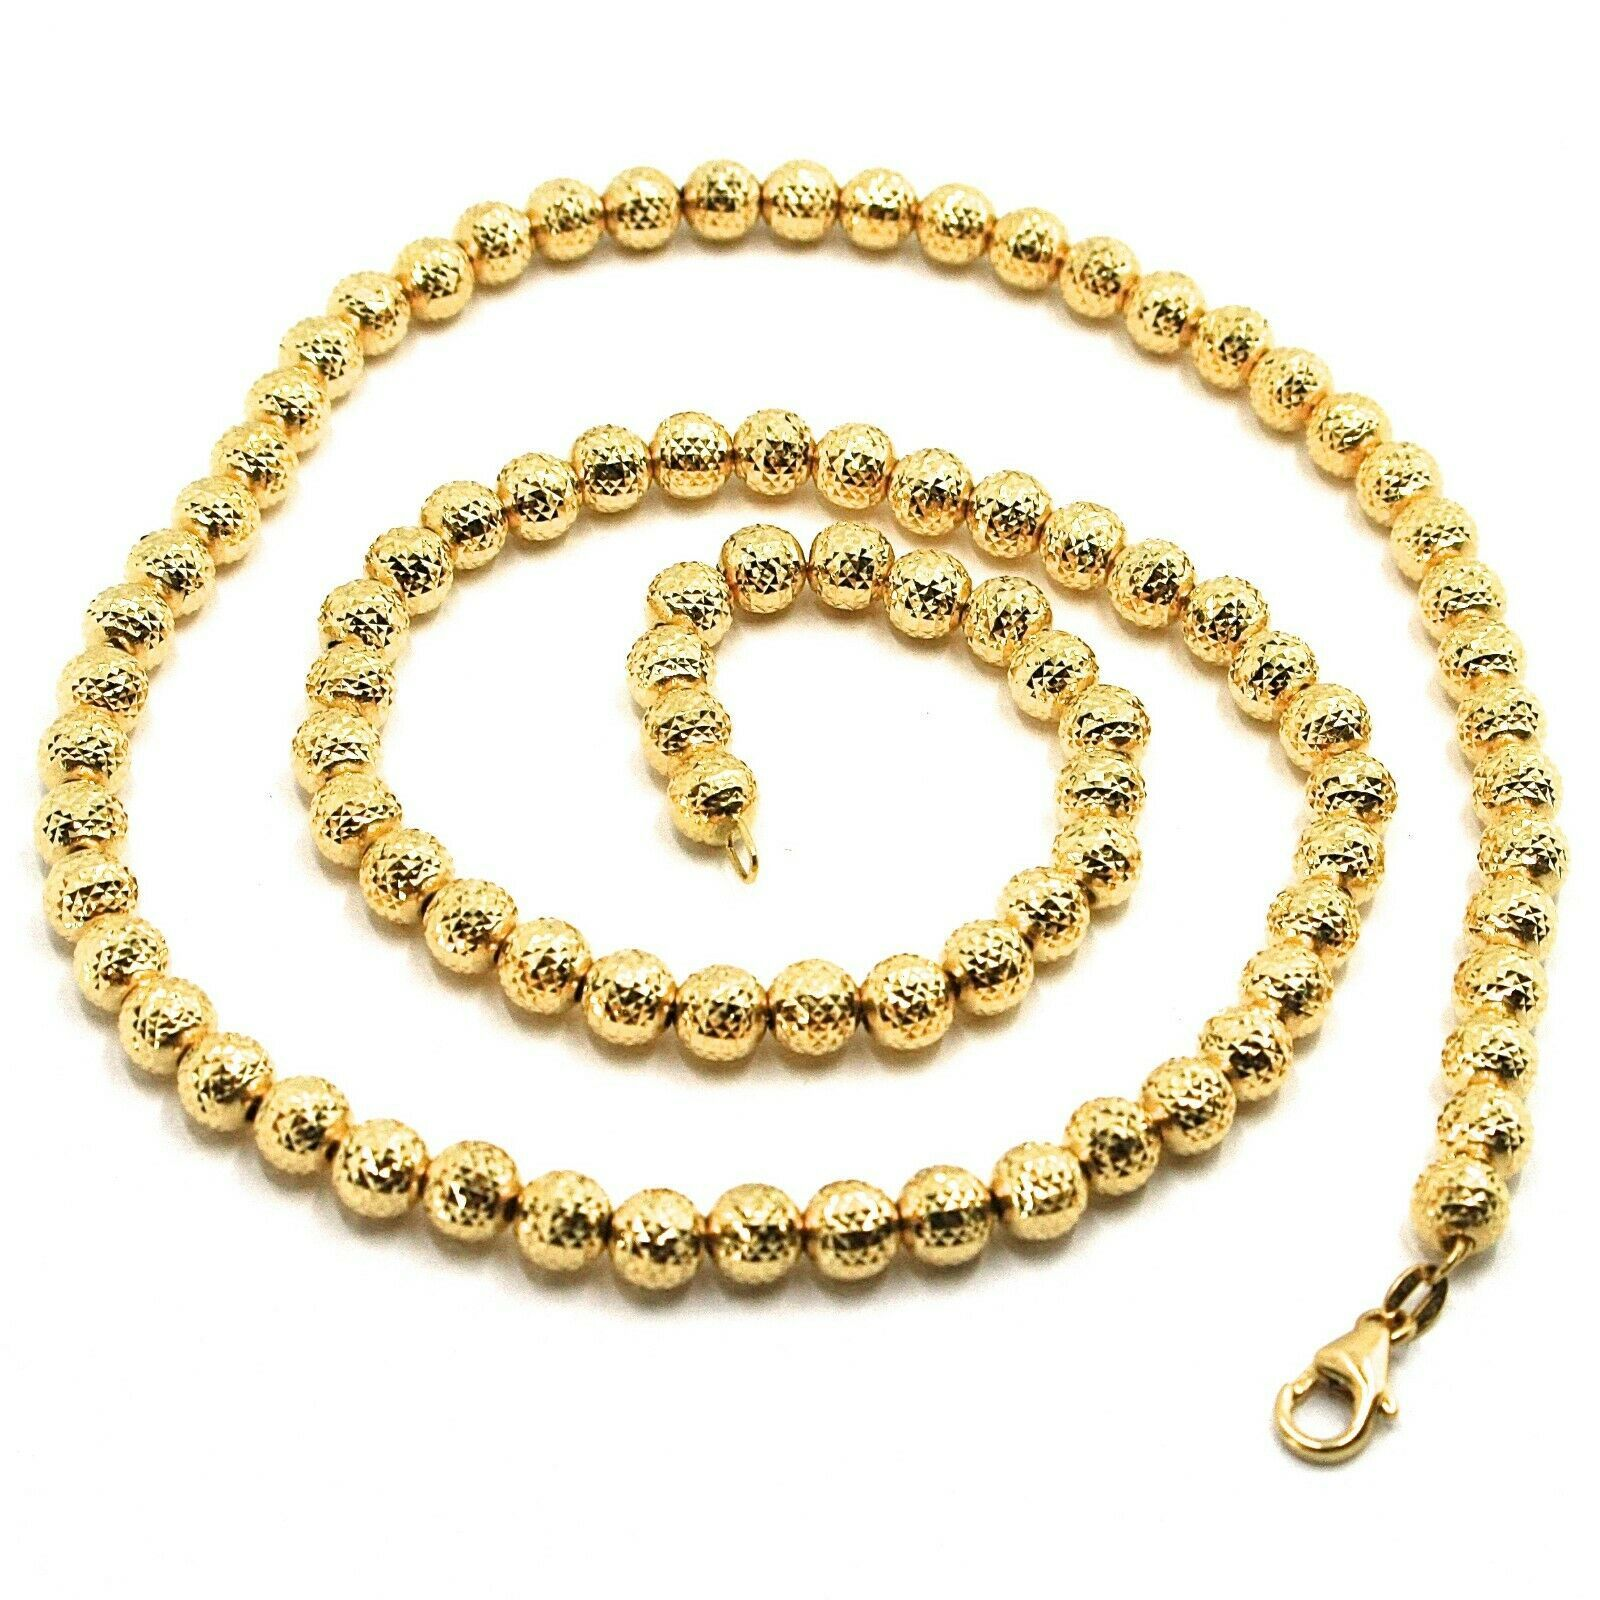 "18K YELLOW GOLD CHAIN FINELY WORKED SPHERES 5 MM DIAMOND CUT, FACETED, 18"" 45 CM"